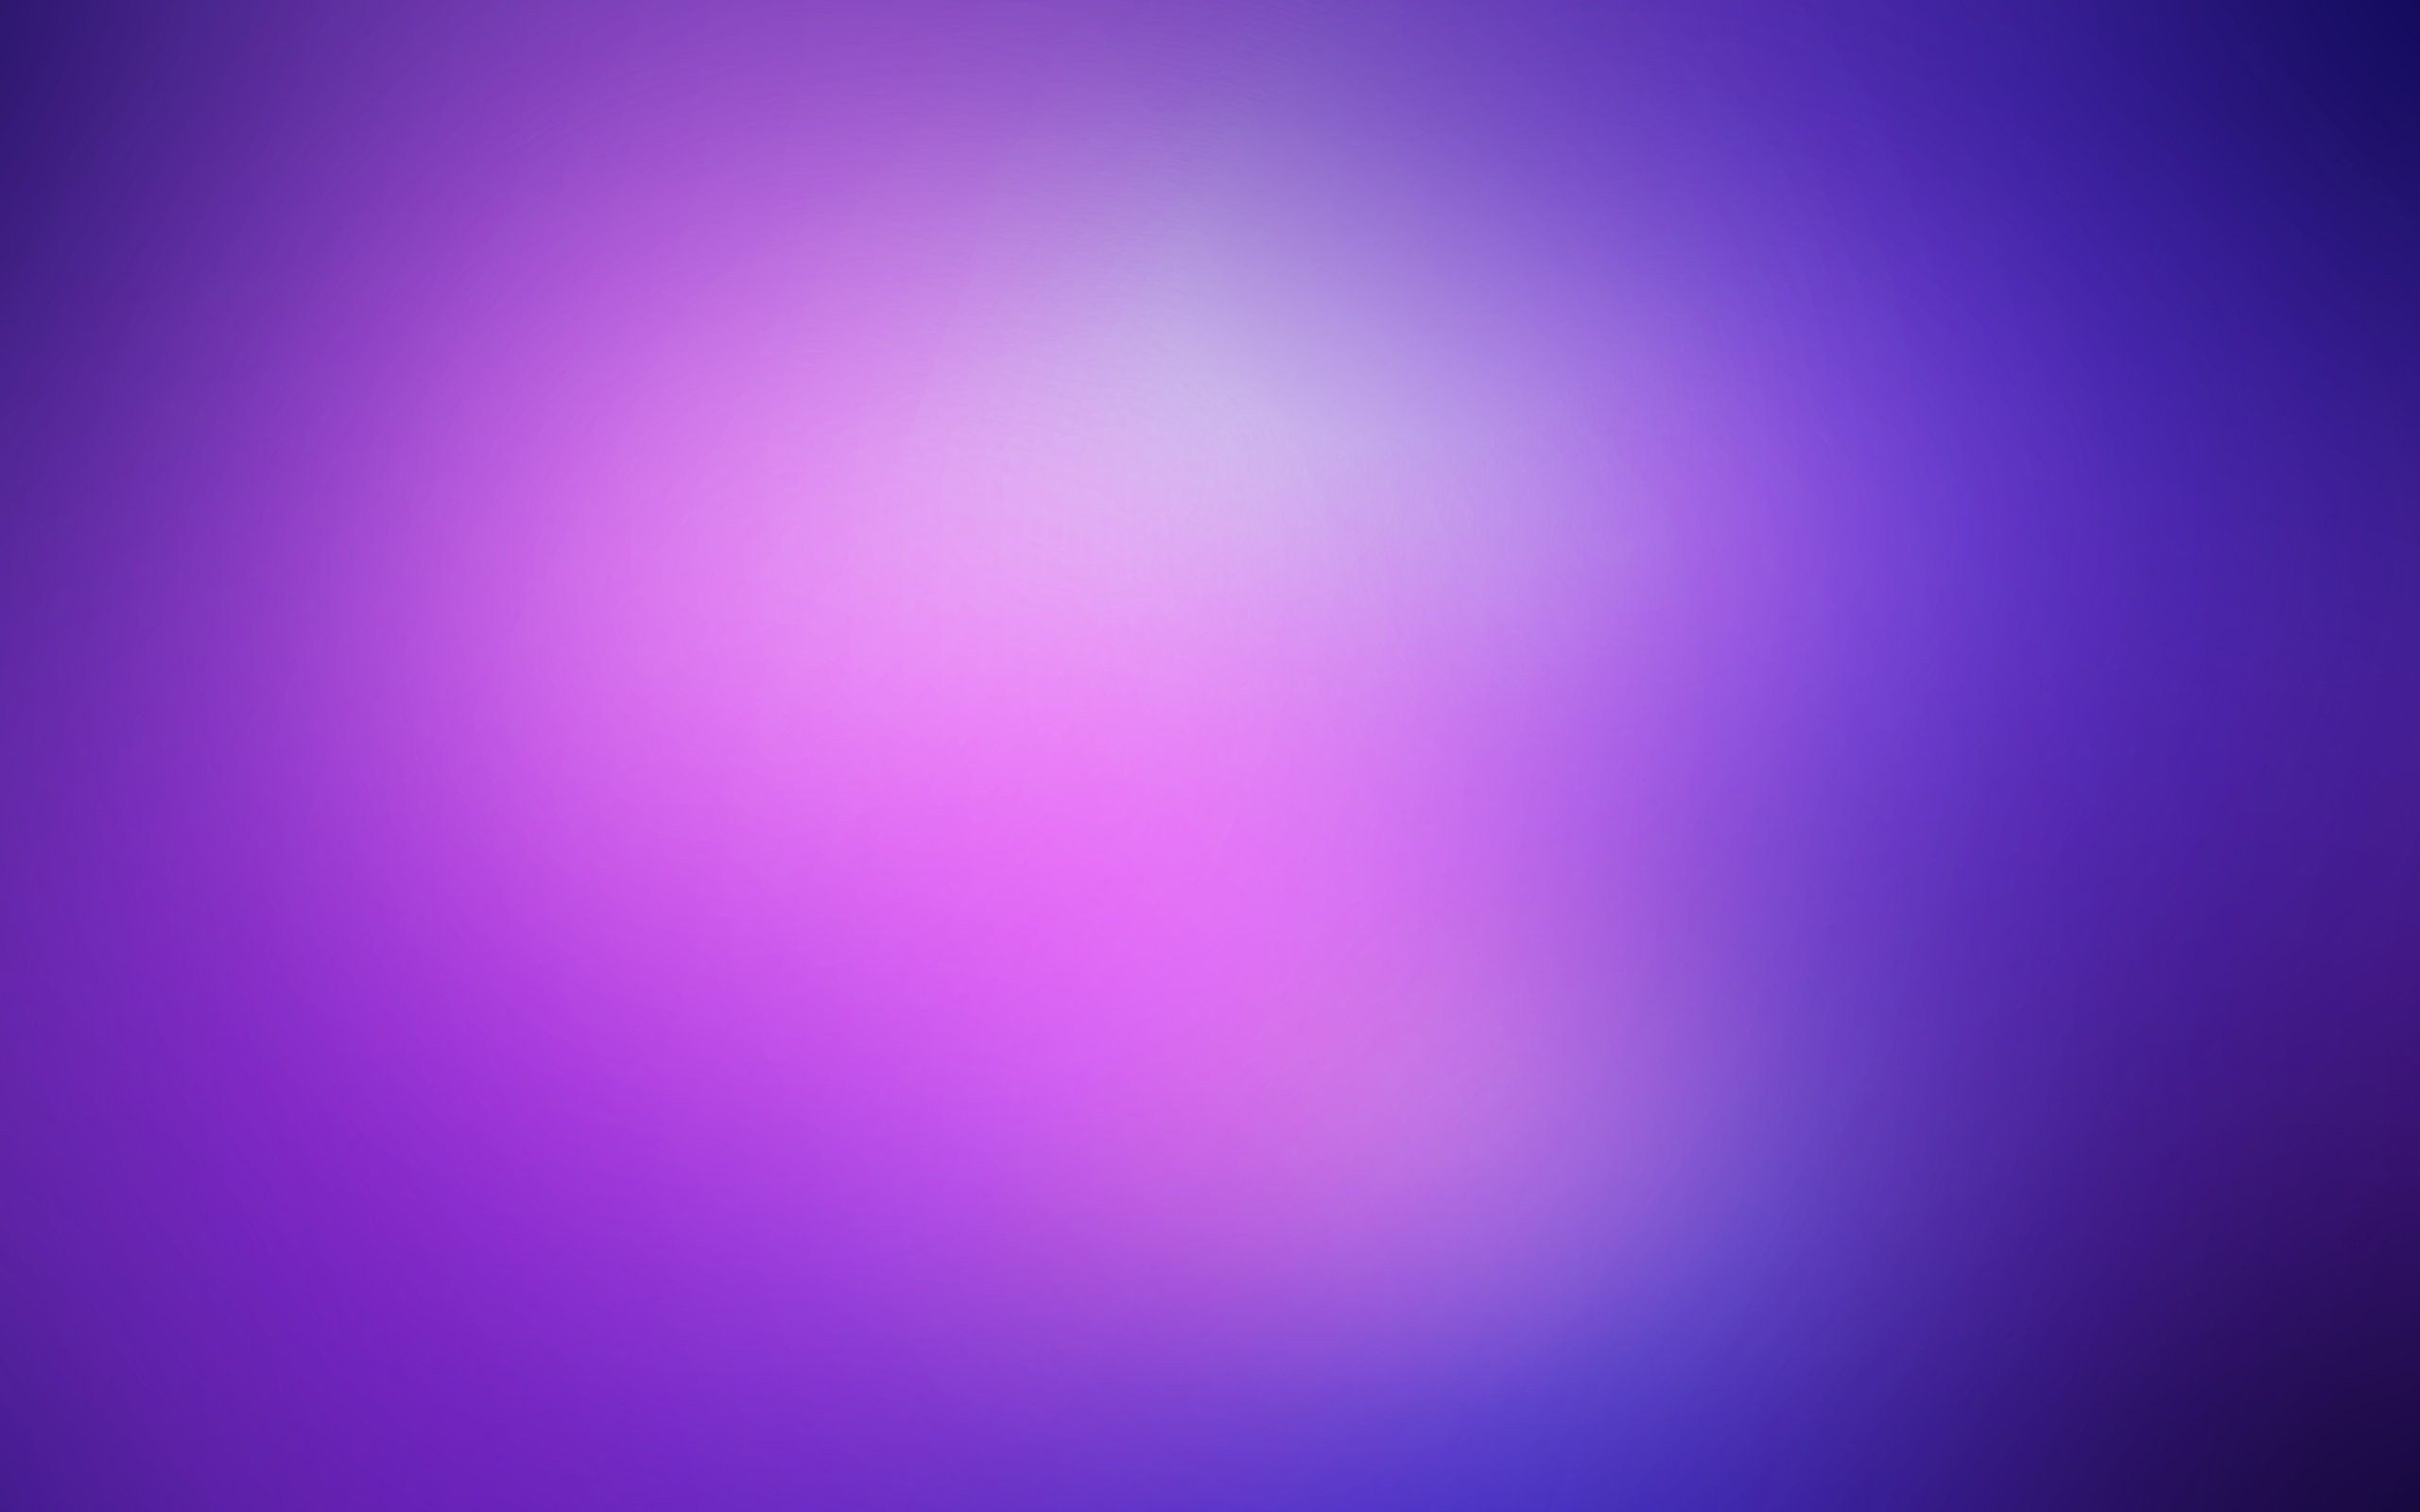 Solid Color Backgrounds